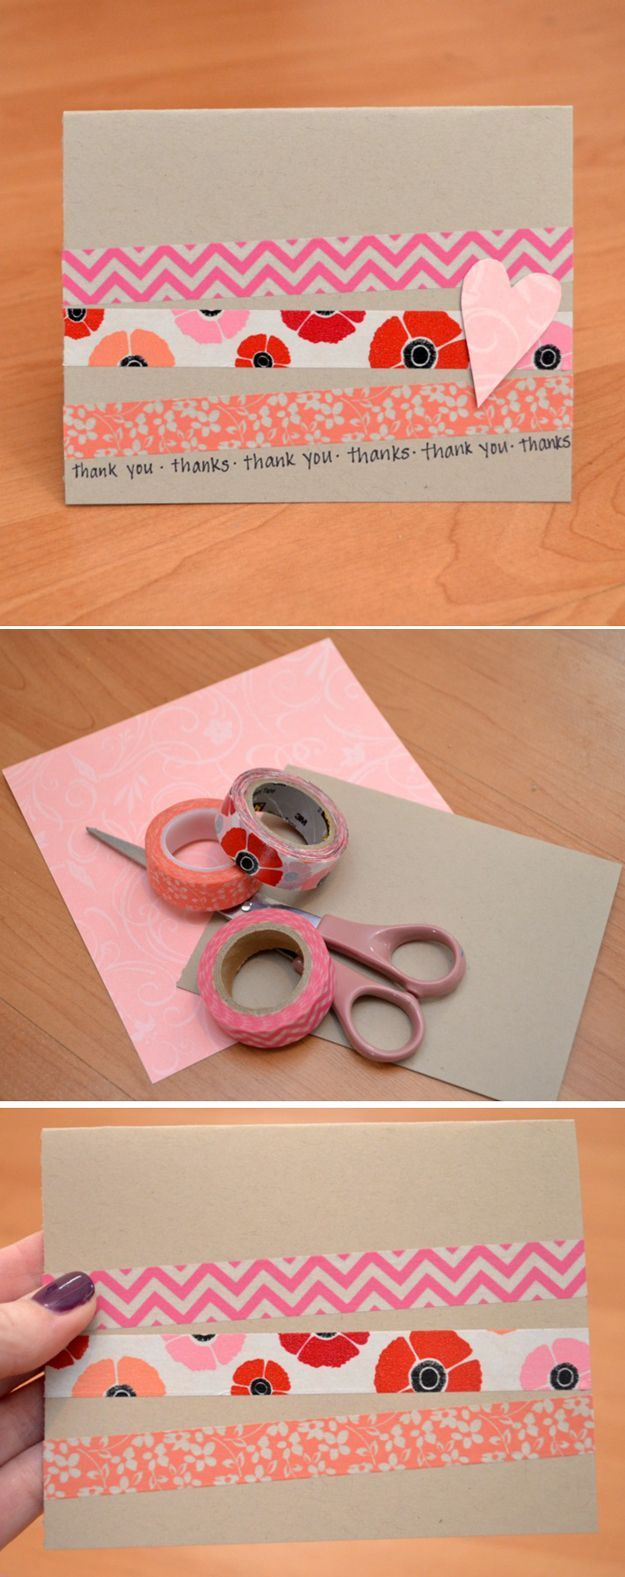 washi tape ideas to style and personalize your items washi